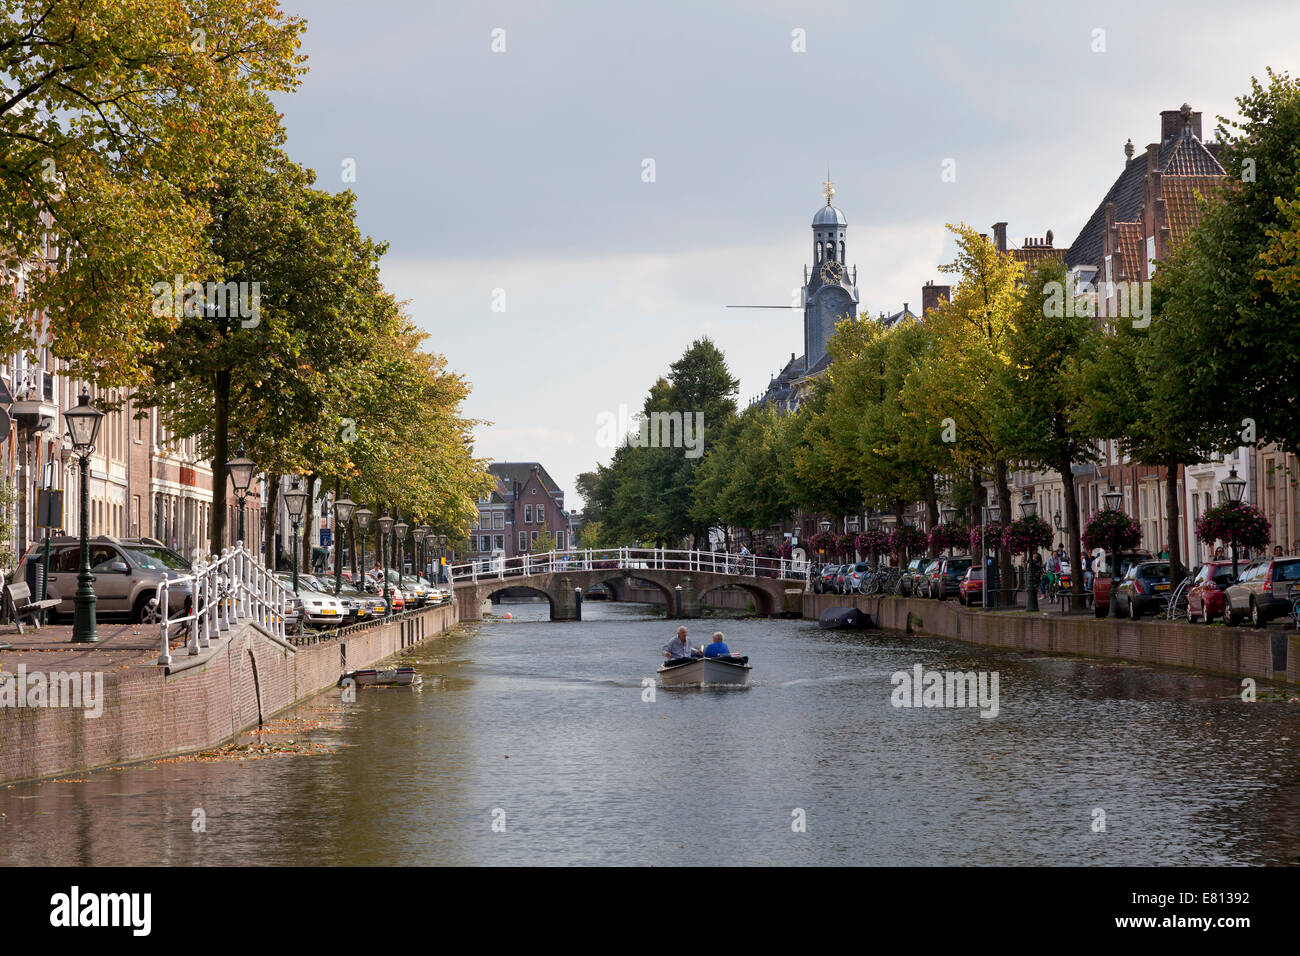 Boating on Canal Rapenburg in the city of Leiden, Netherlands - Stock Image